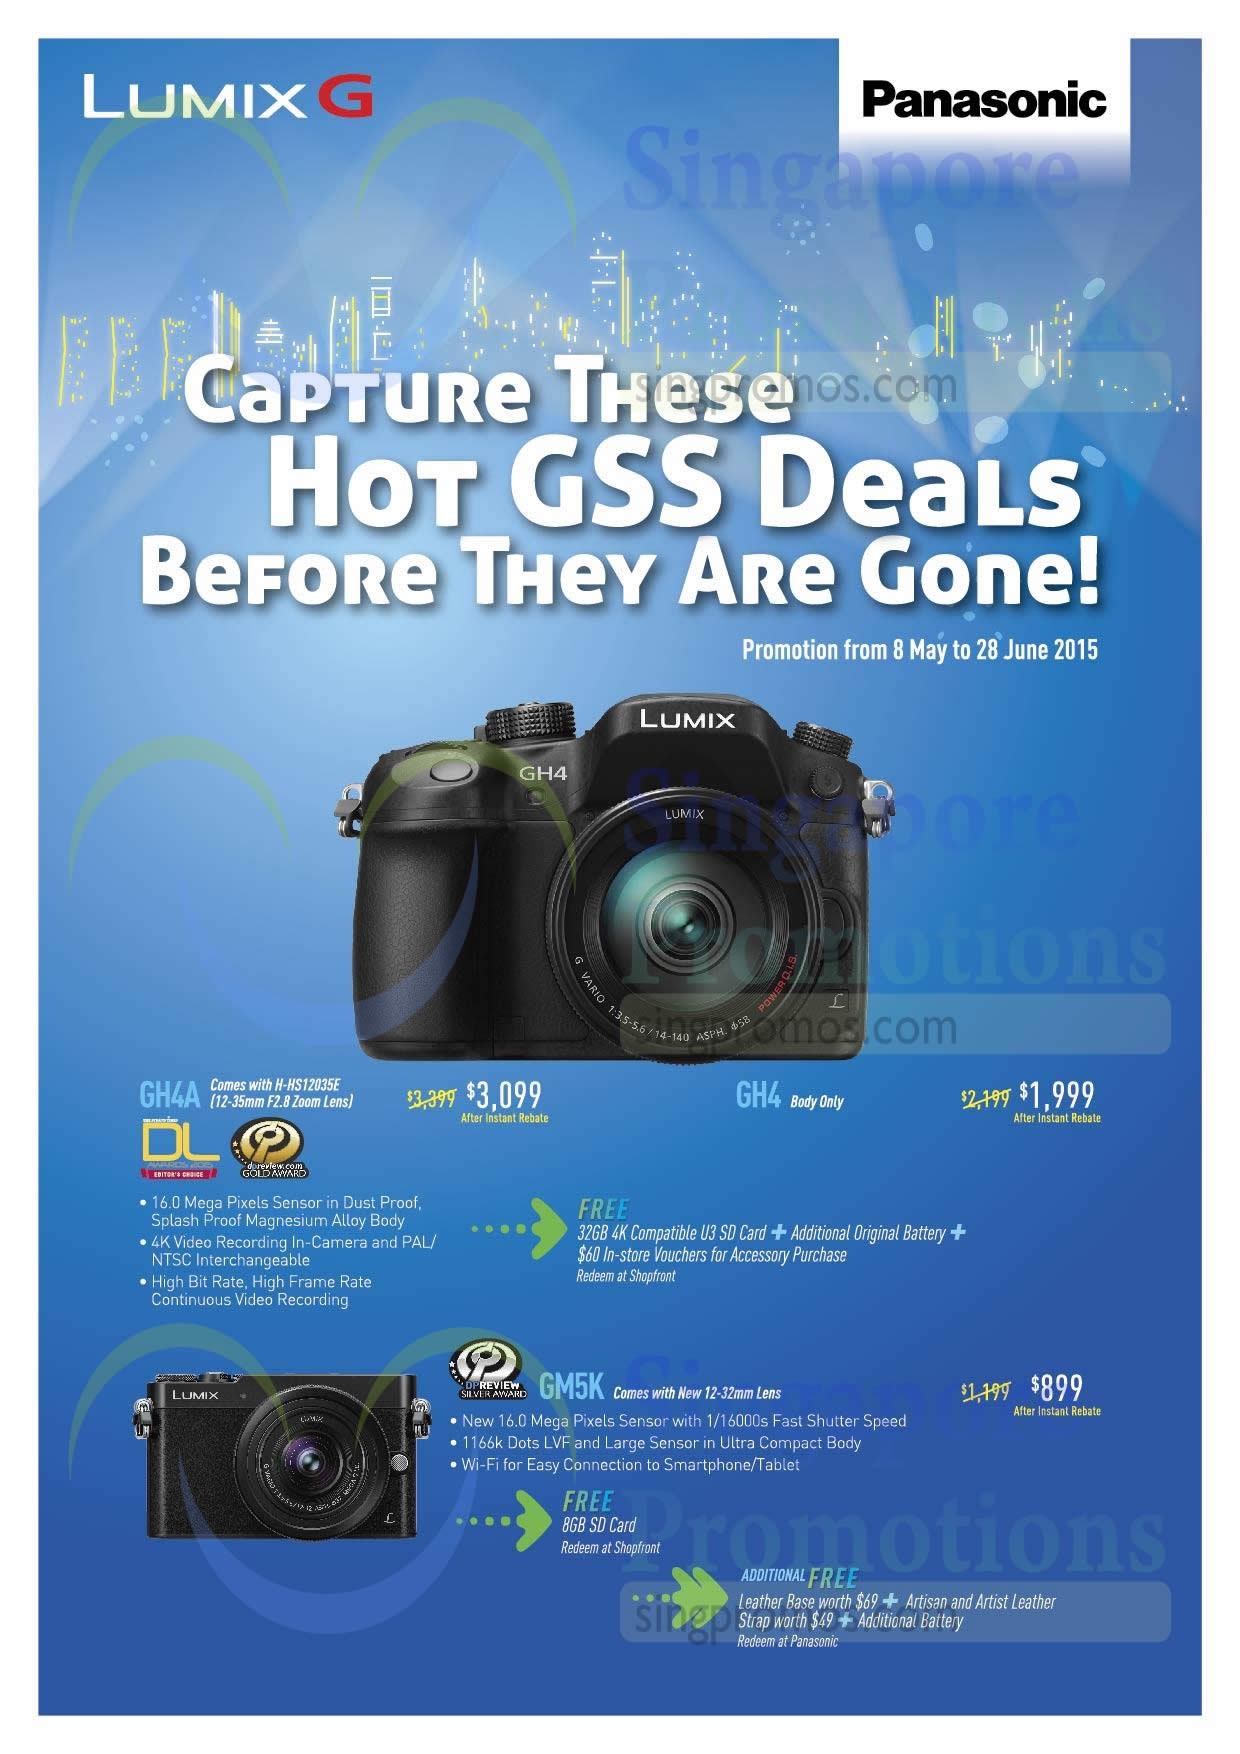 Panasonic GH4A Digital Camera, Panasonic GH4 Digital Camera, Panasonic GM5K Digital Camera